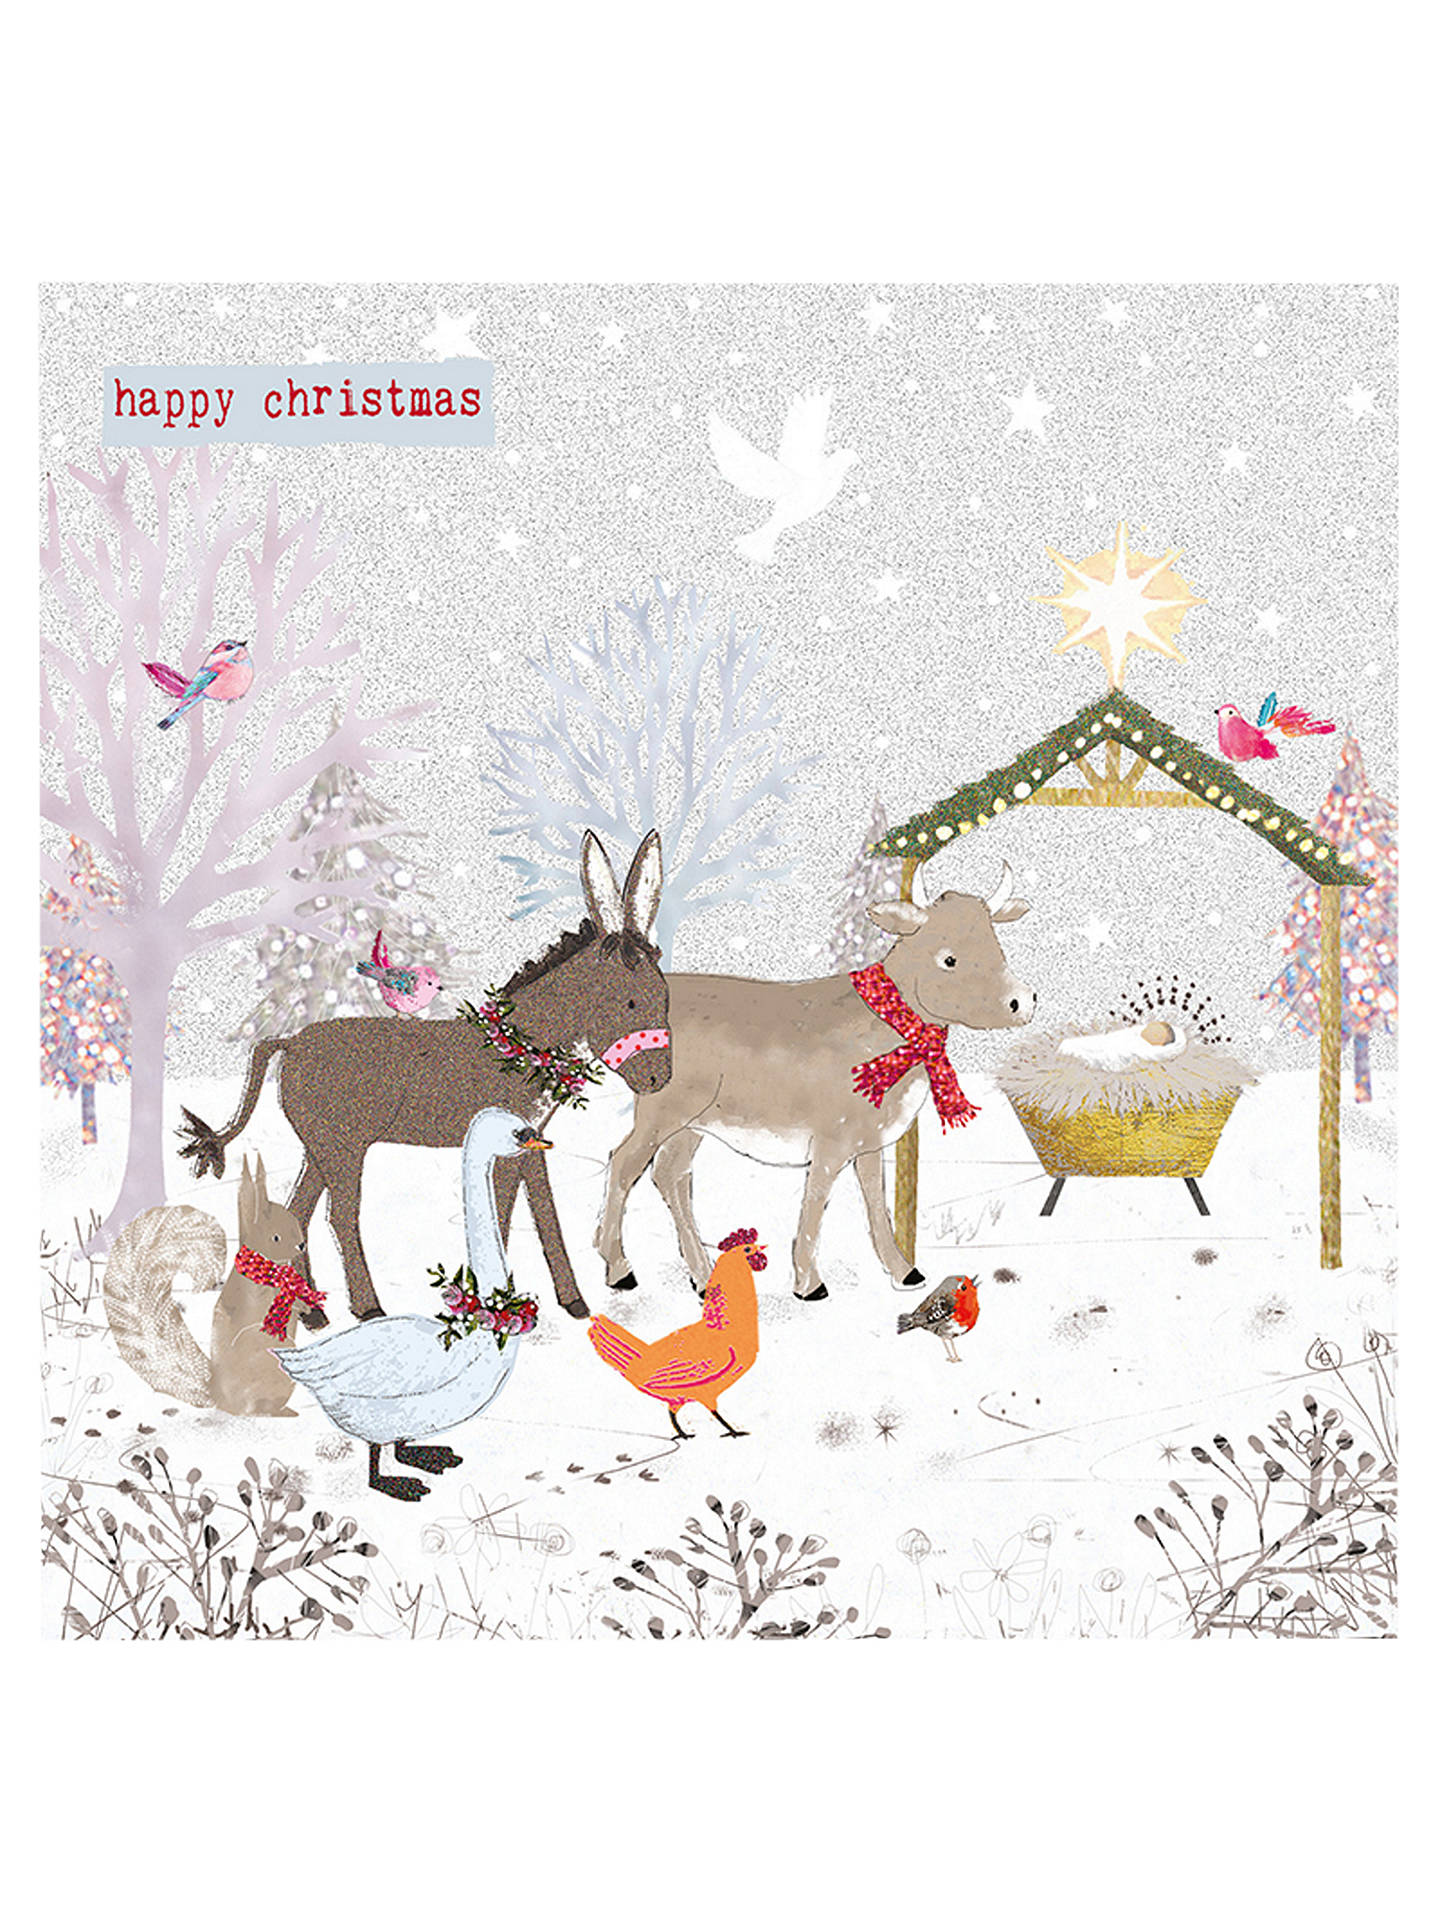 buyhammond gower animal nativity charity christmas cards pack of 5 online at johnlewiscom - Animal Charity Christmas Cards